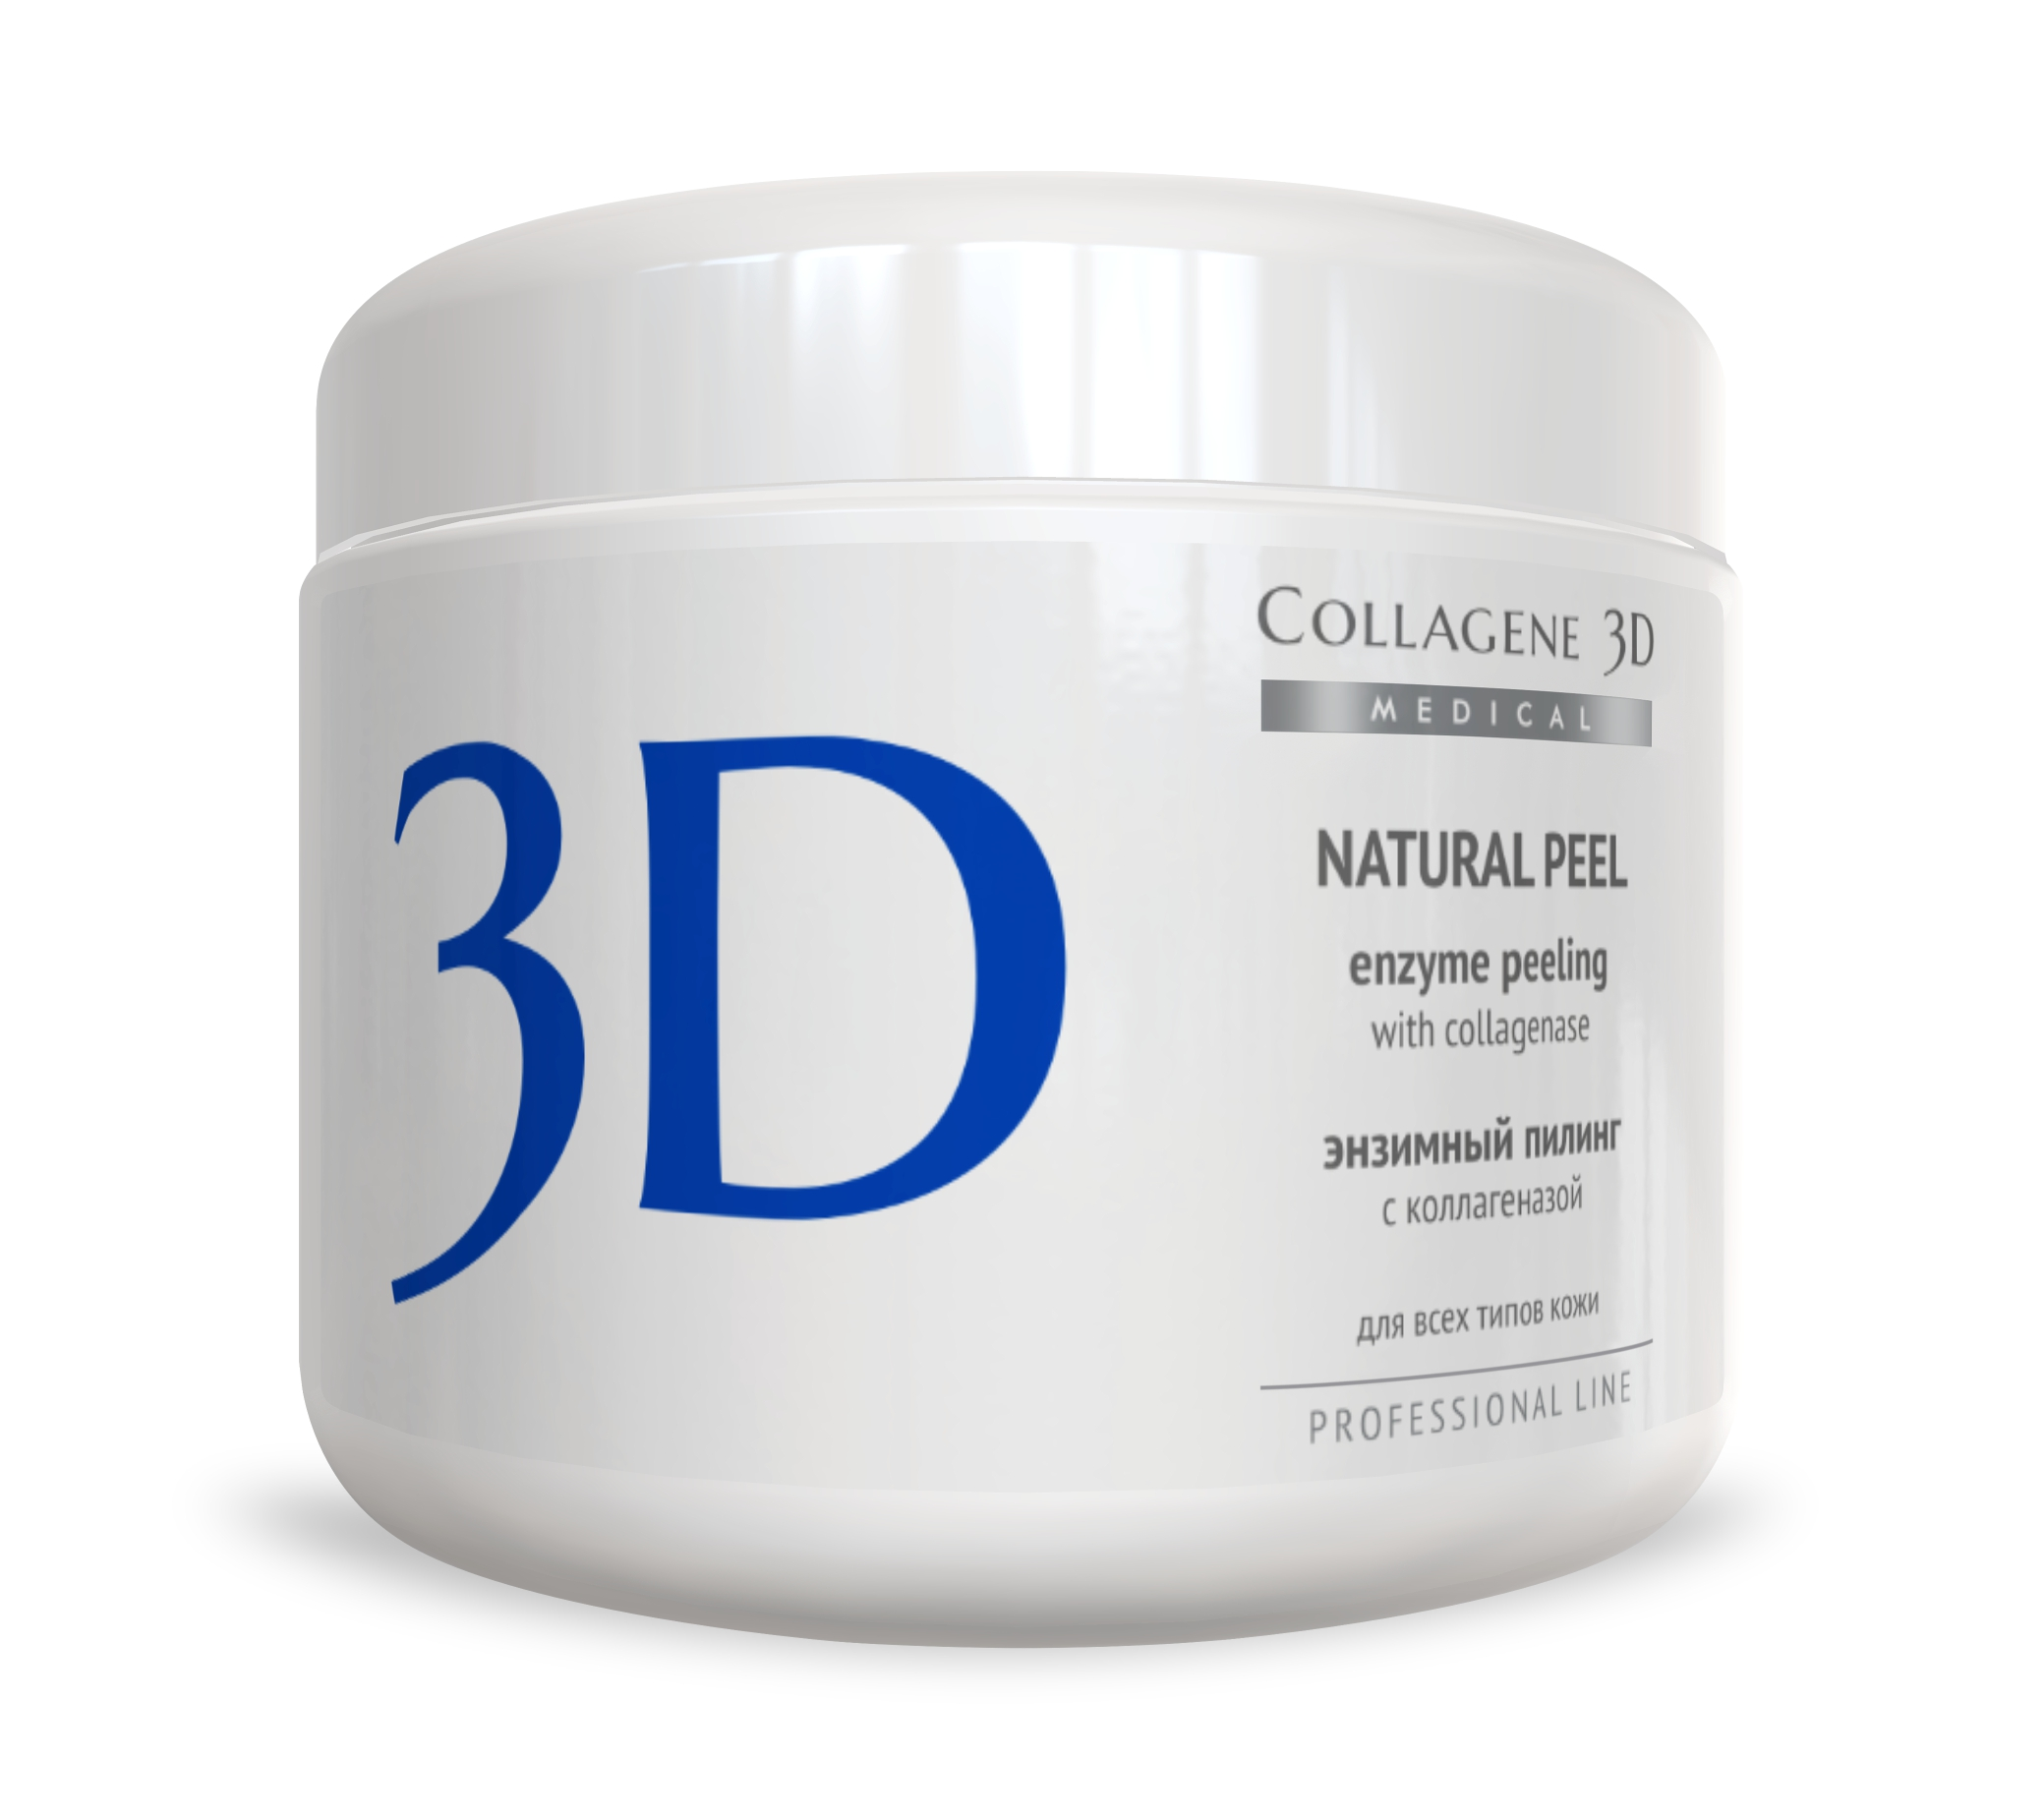 MEDICAL COLLAGENE 3D Пилинг с коллагеназой / Natural Peel 150 мл - Пилинги